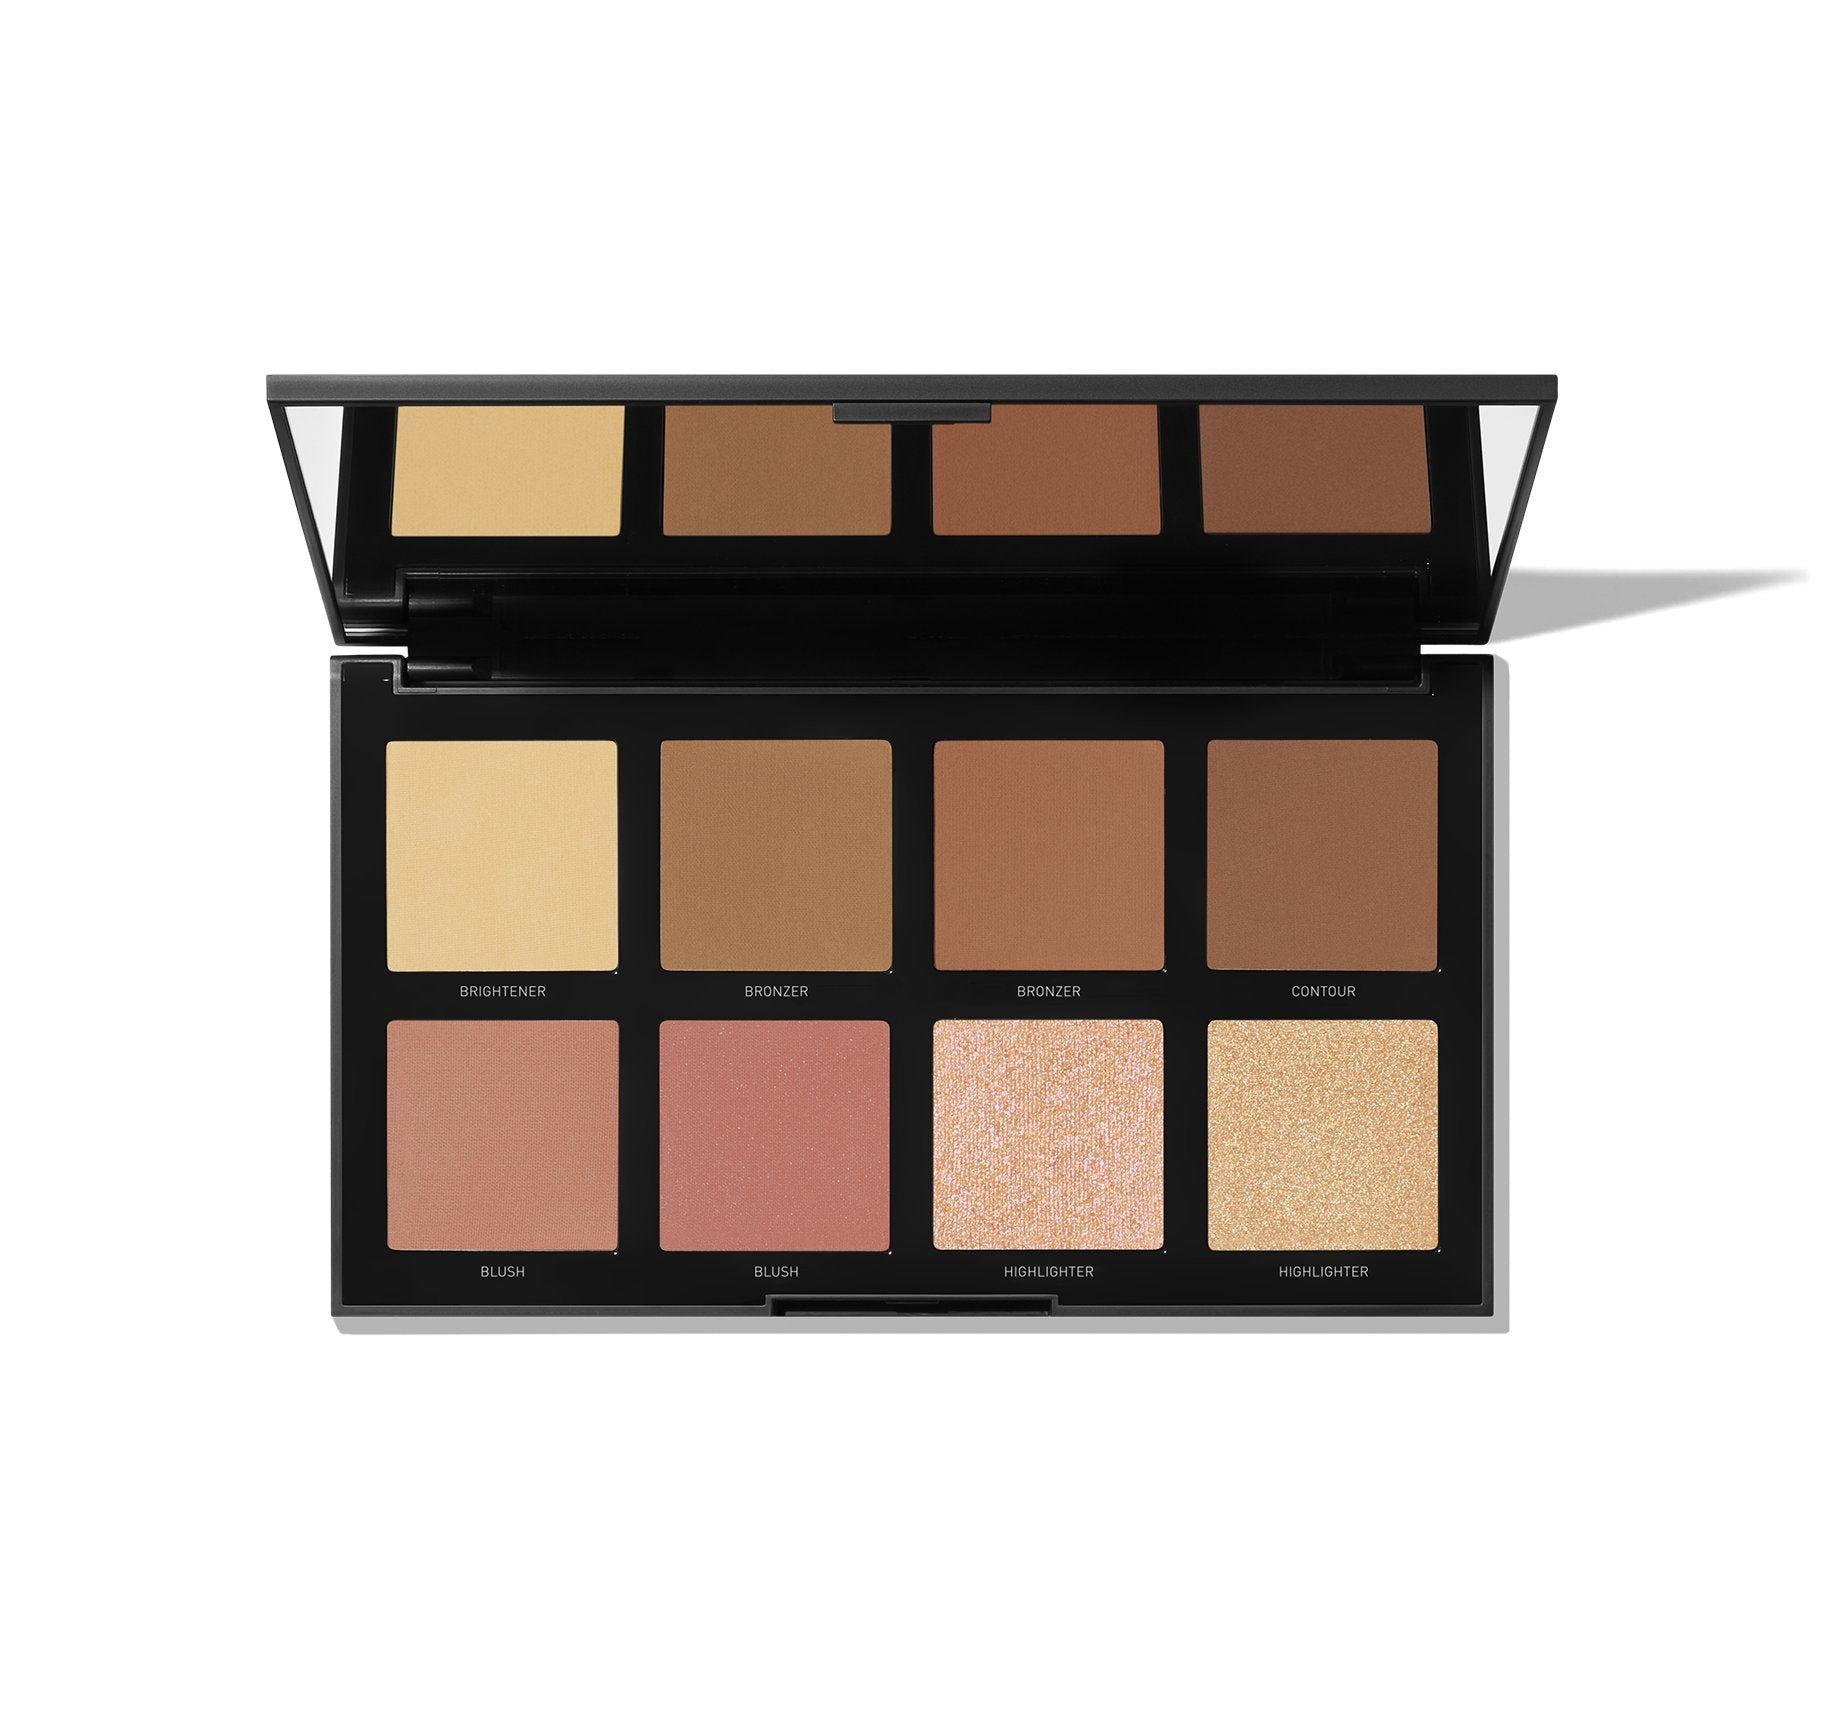 8T TOTALLY TAN FACE PALETTE, view larger image